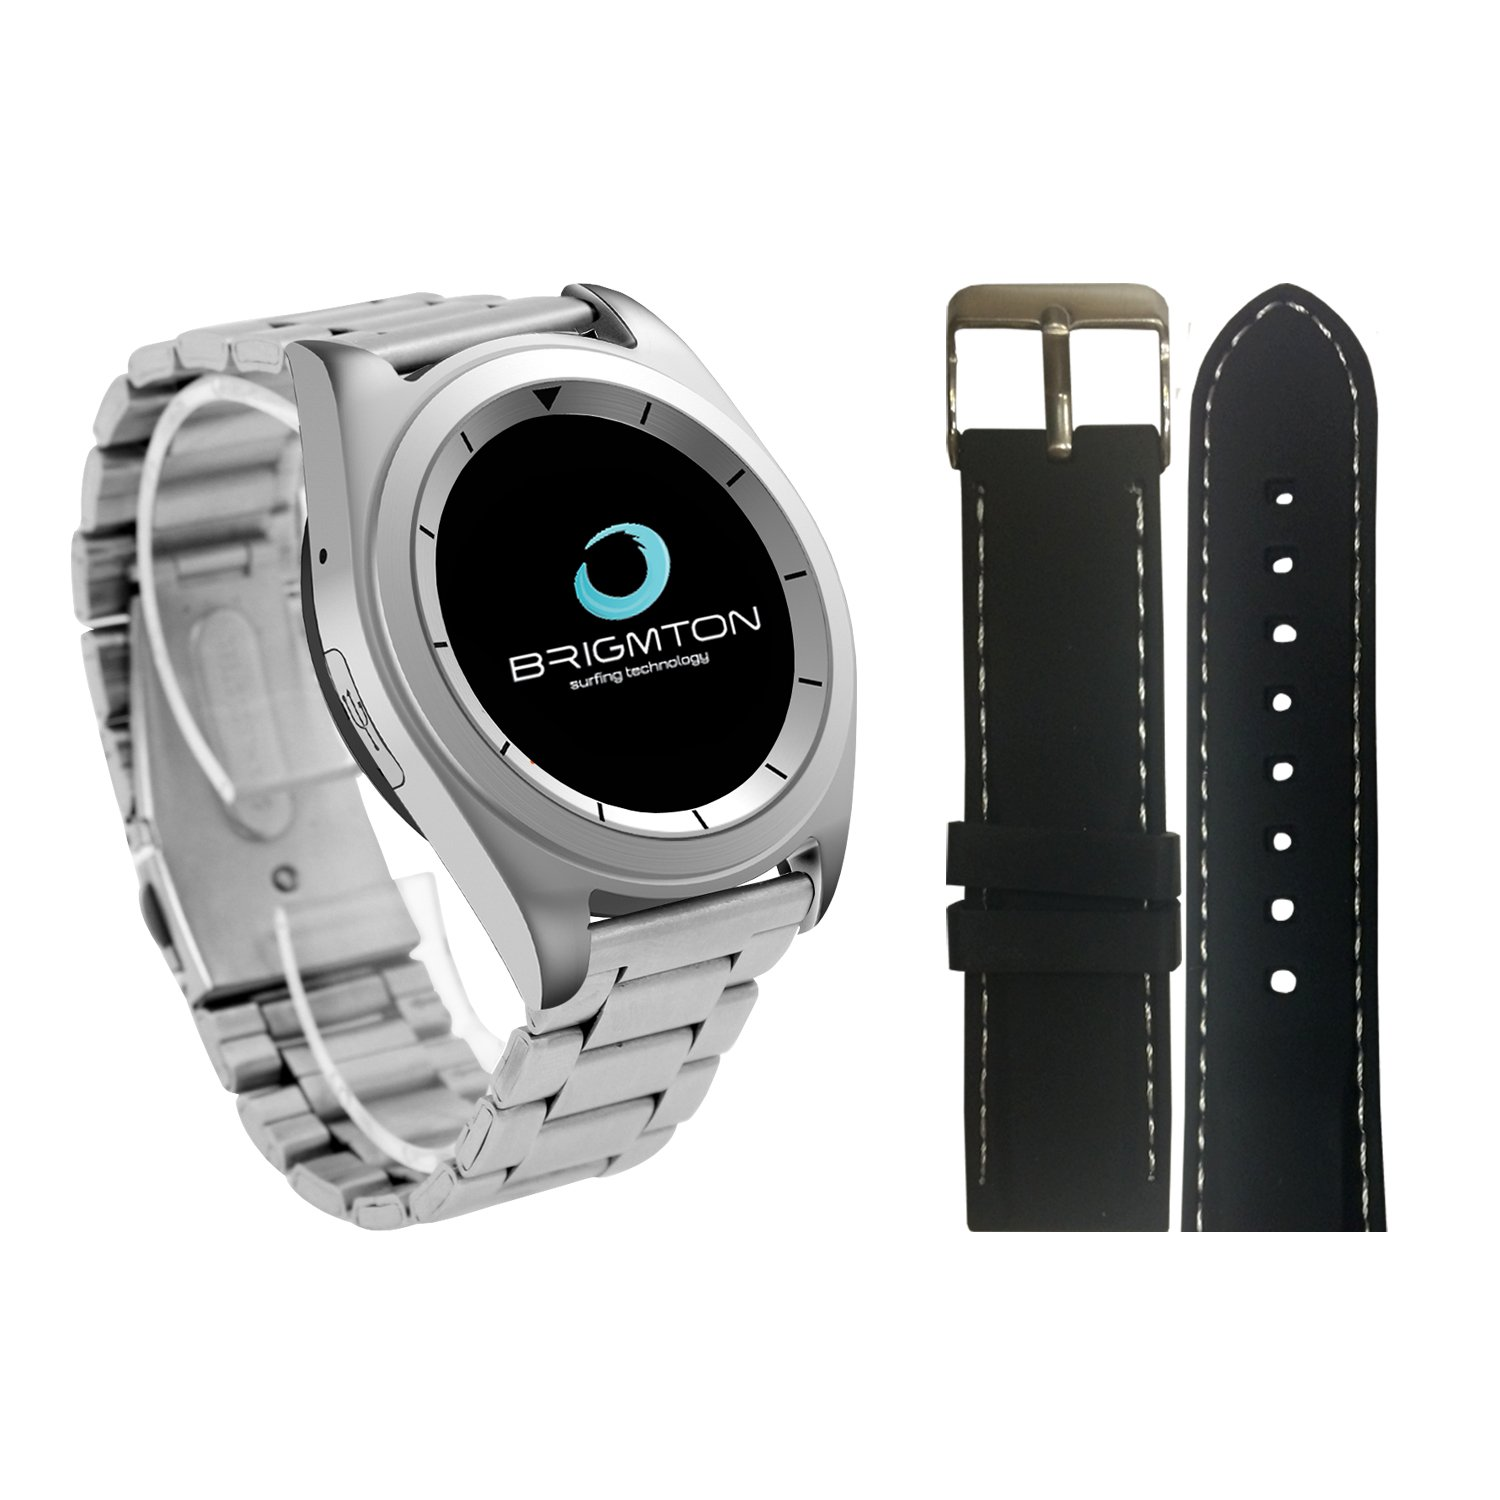 Amazon.com: BRIGMTON - Watch/Heart-rate Monitor BRIGMTON ...